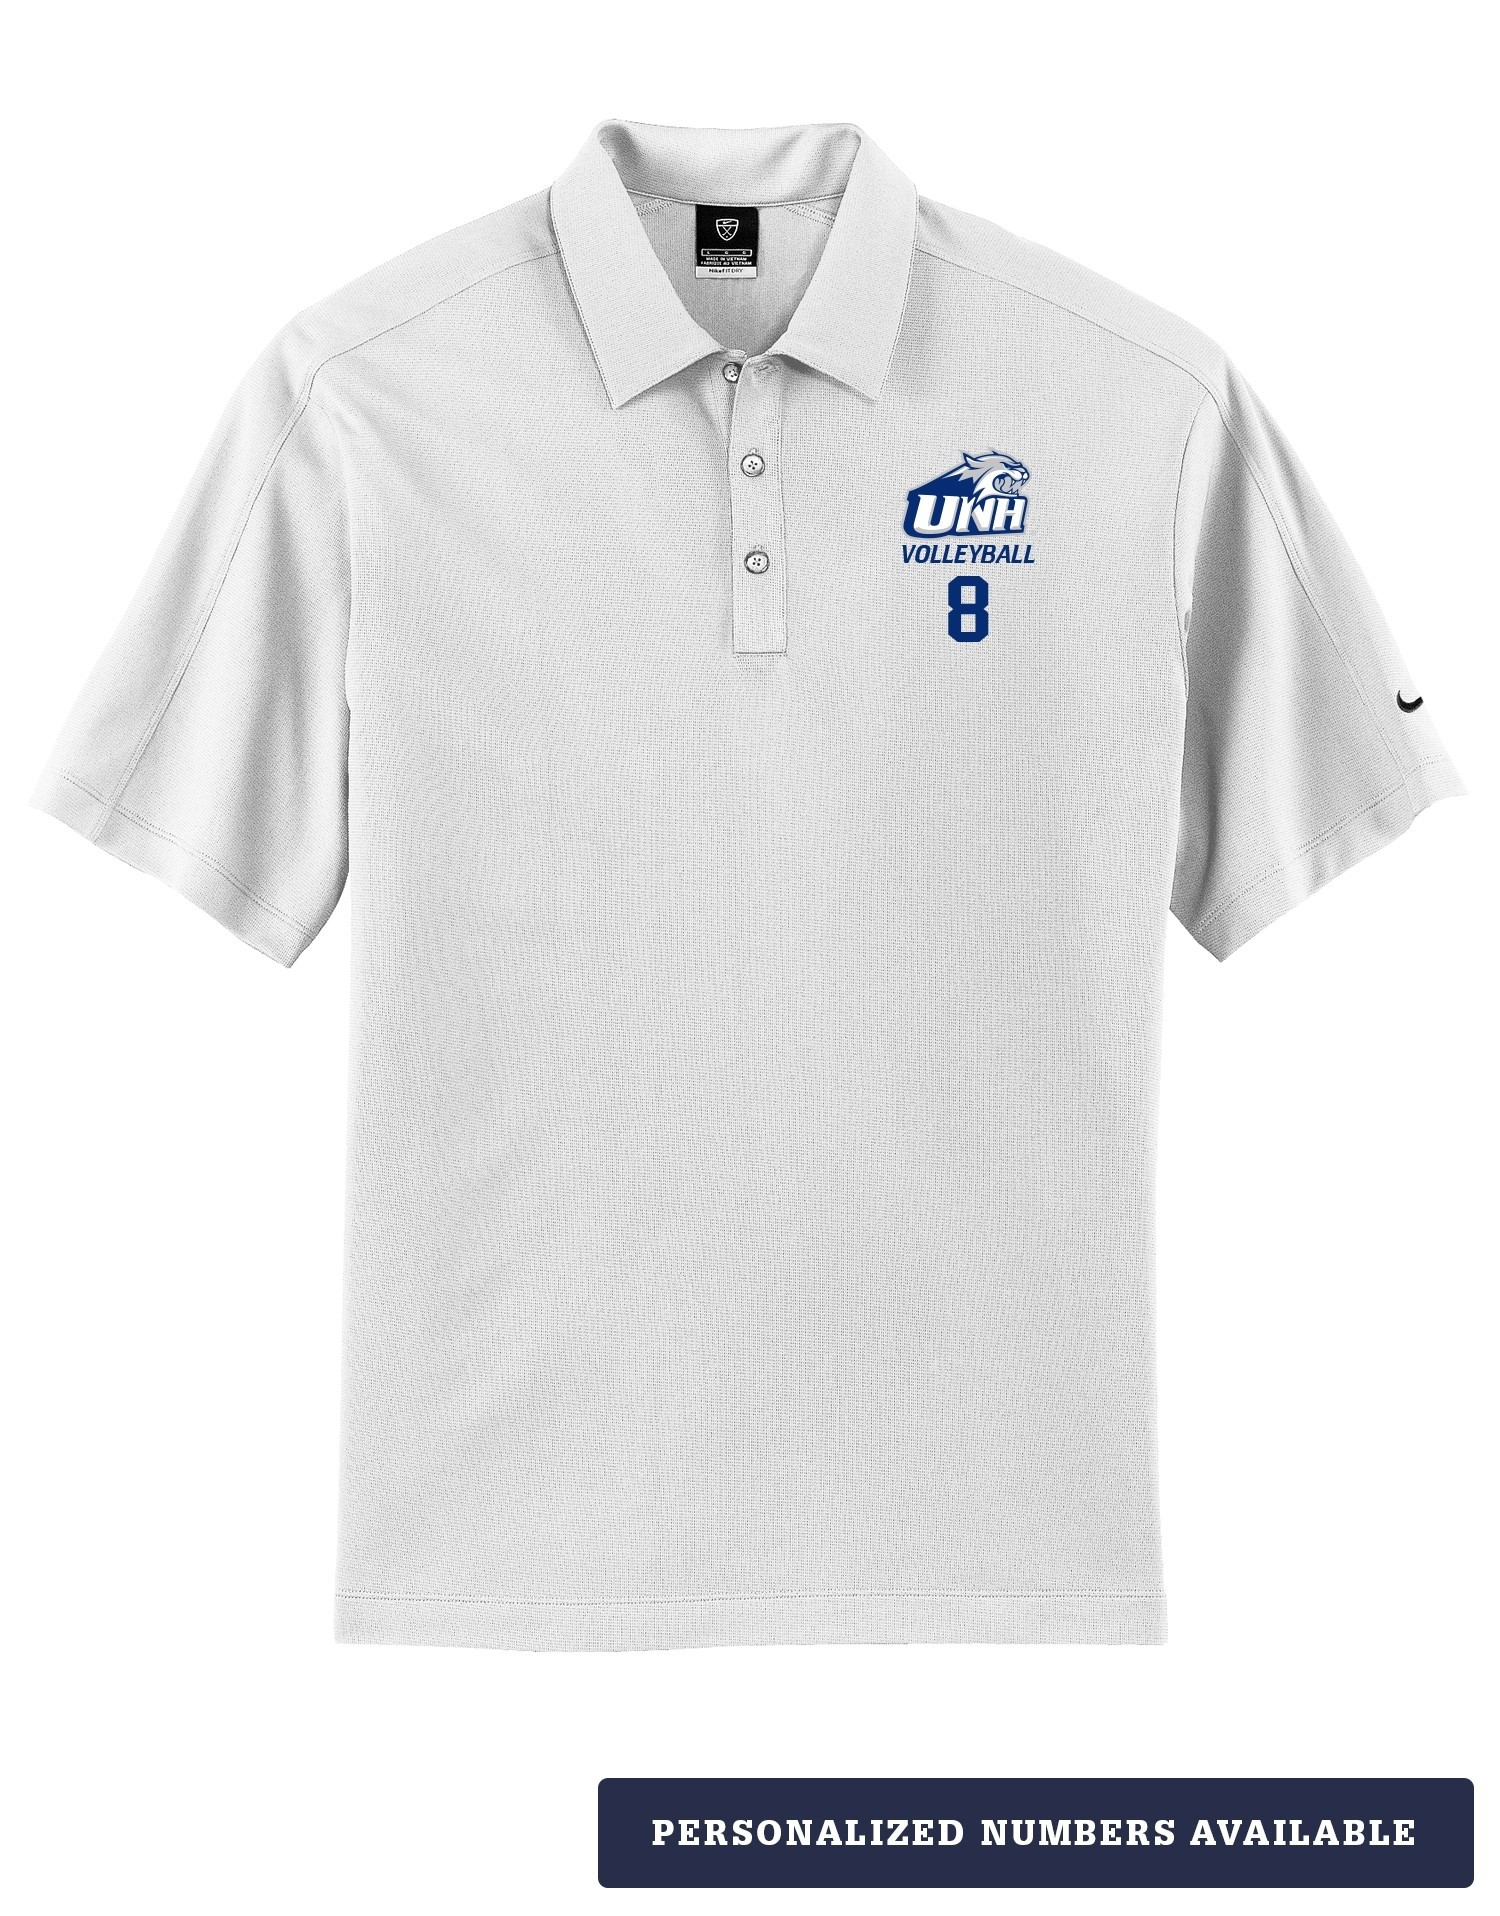 Unh Volleyball Men S Nike Dri Fit Polo Volleyball Apparel